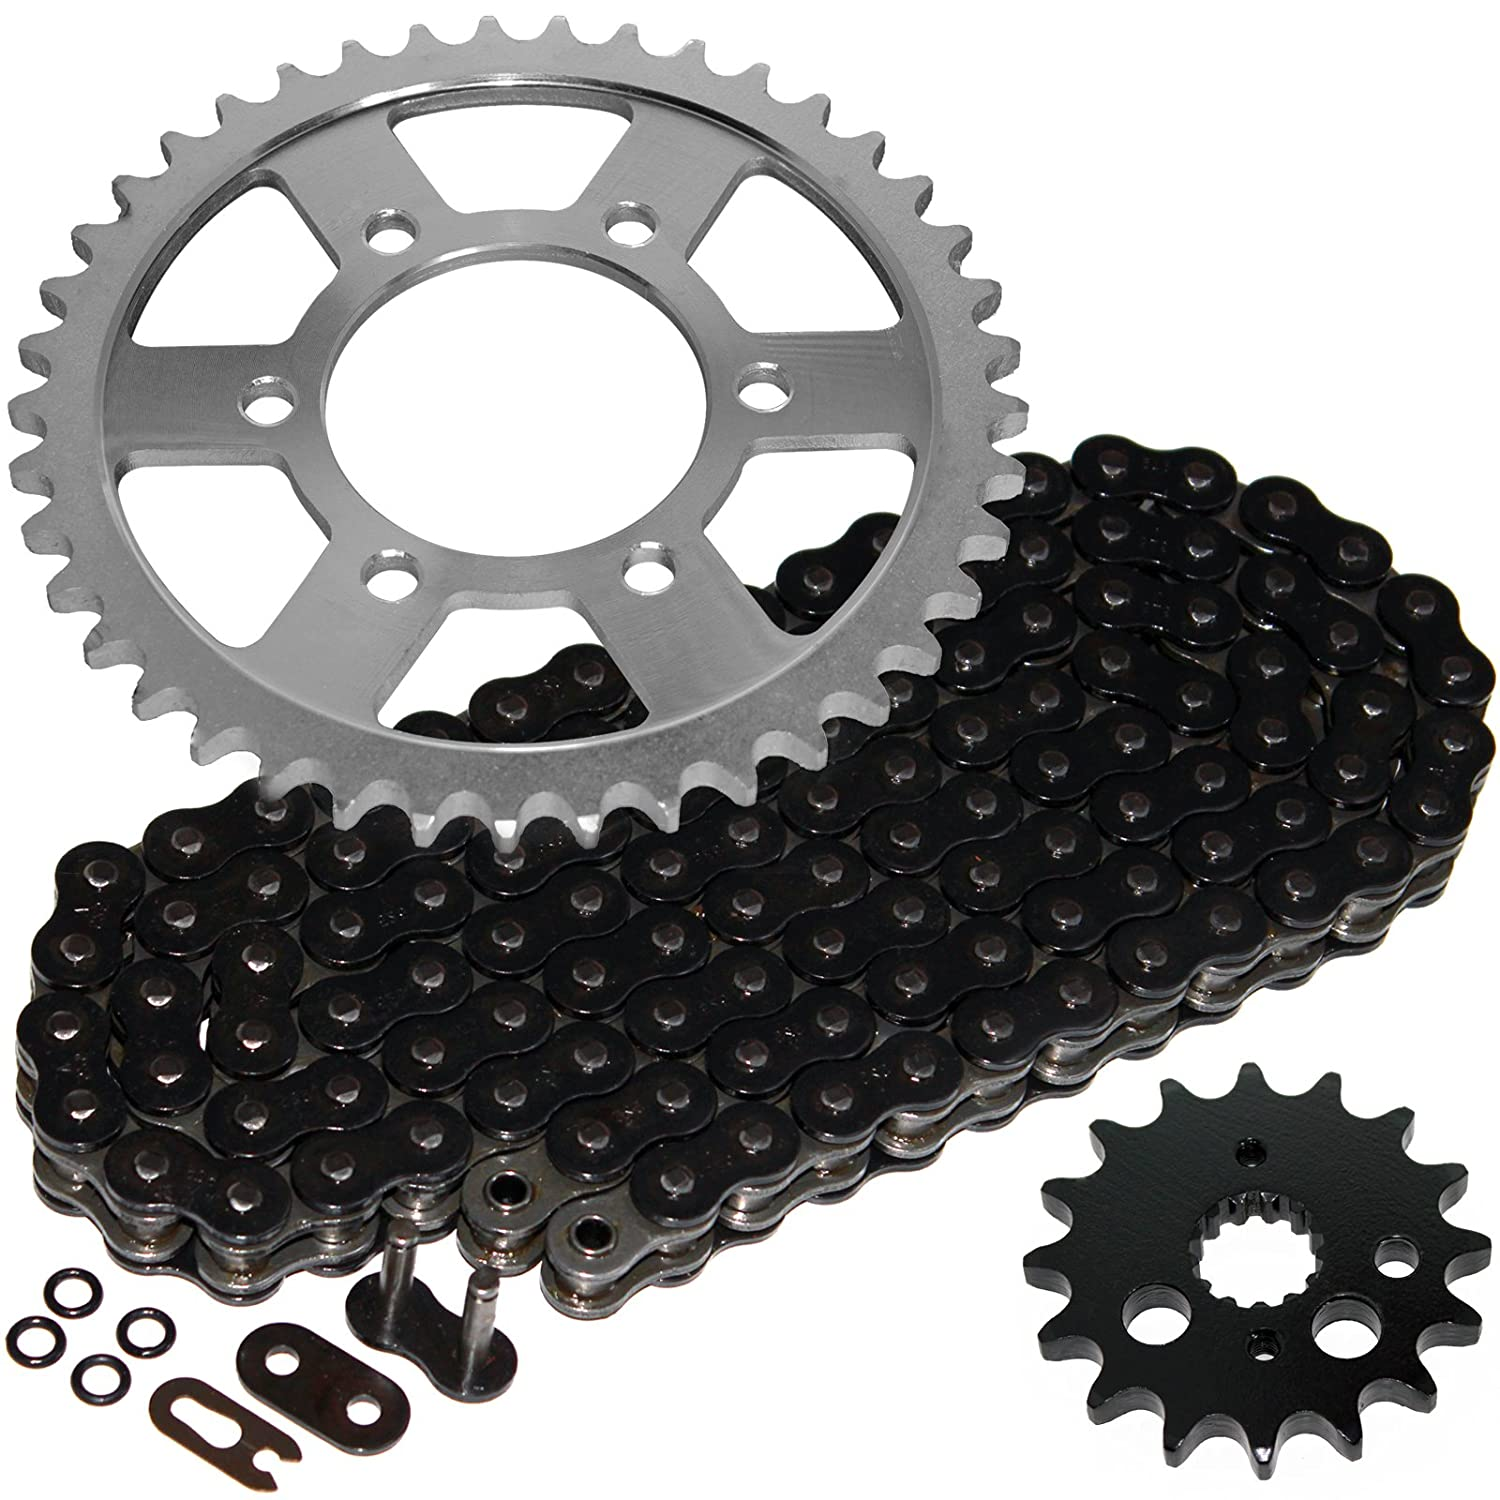 Caltric Black O-Ring Drive Chain & Sprockets Kit for Kawasaki Zx900 Zx-900 Ninja Zx9R 1998-2001